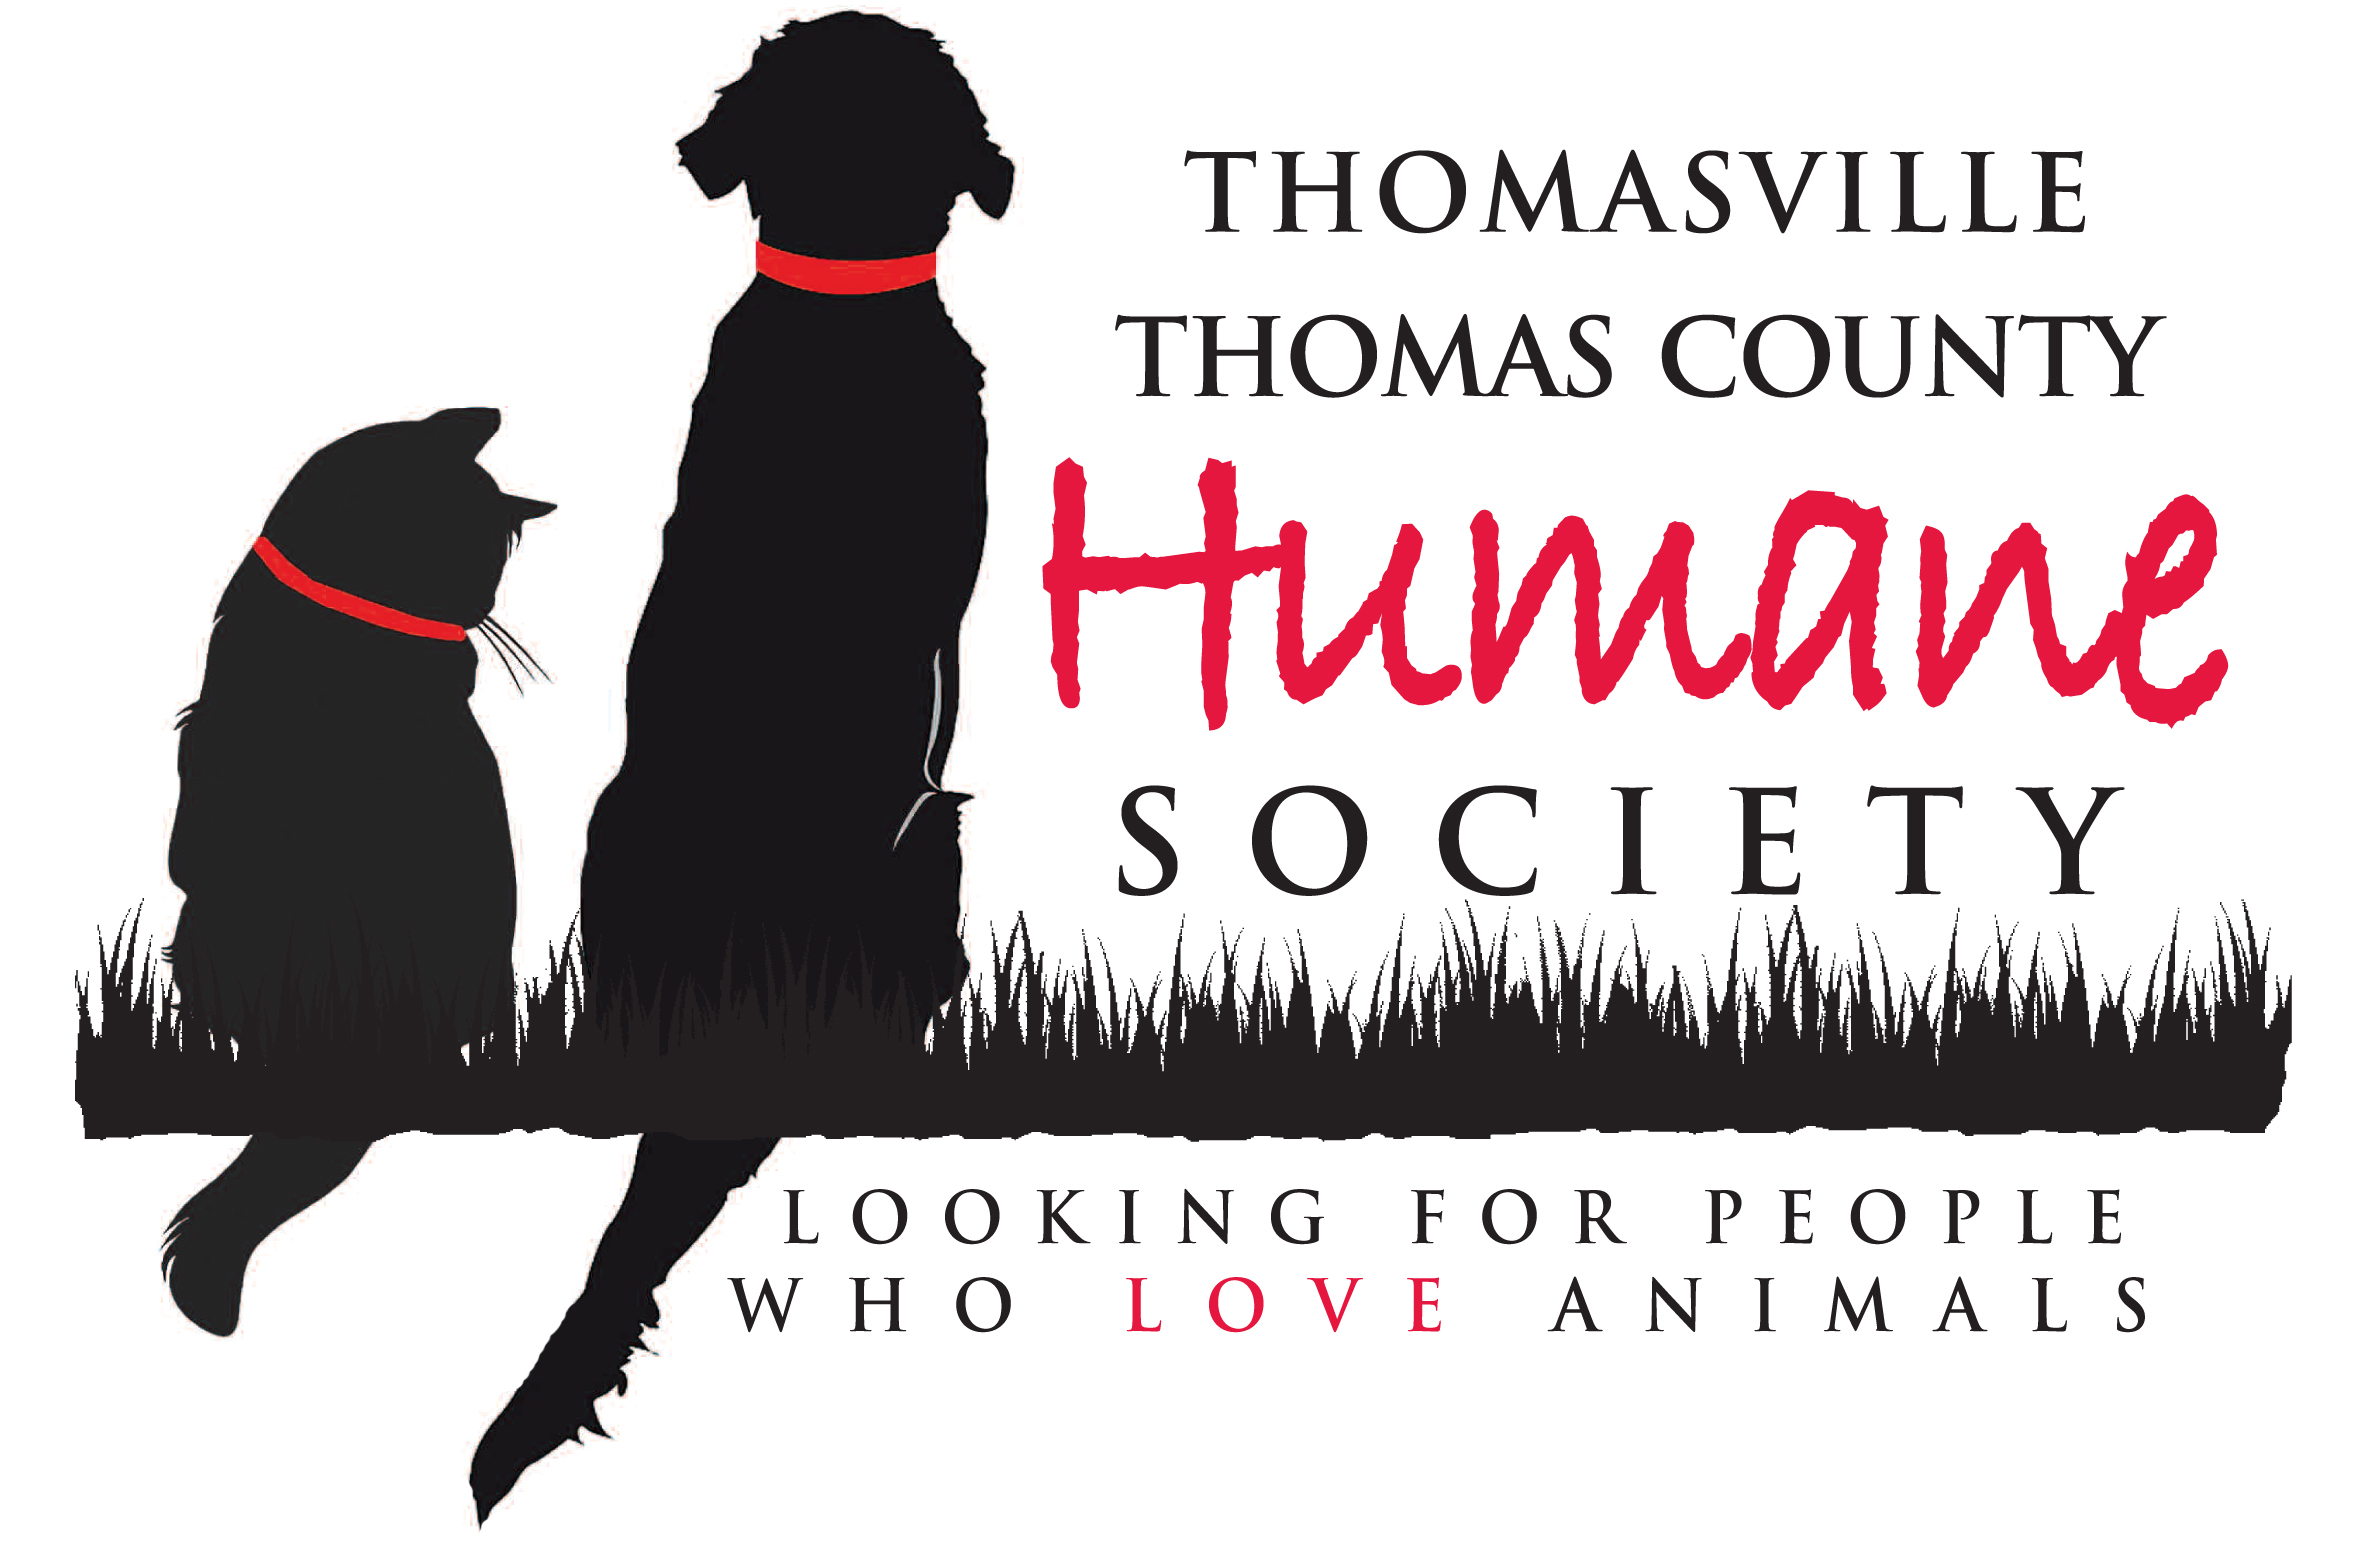 Thomasville-Thomas County Humane Society